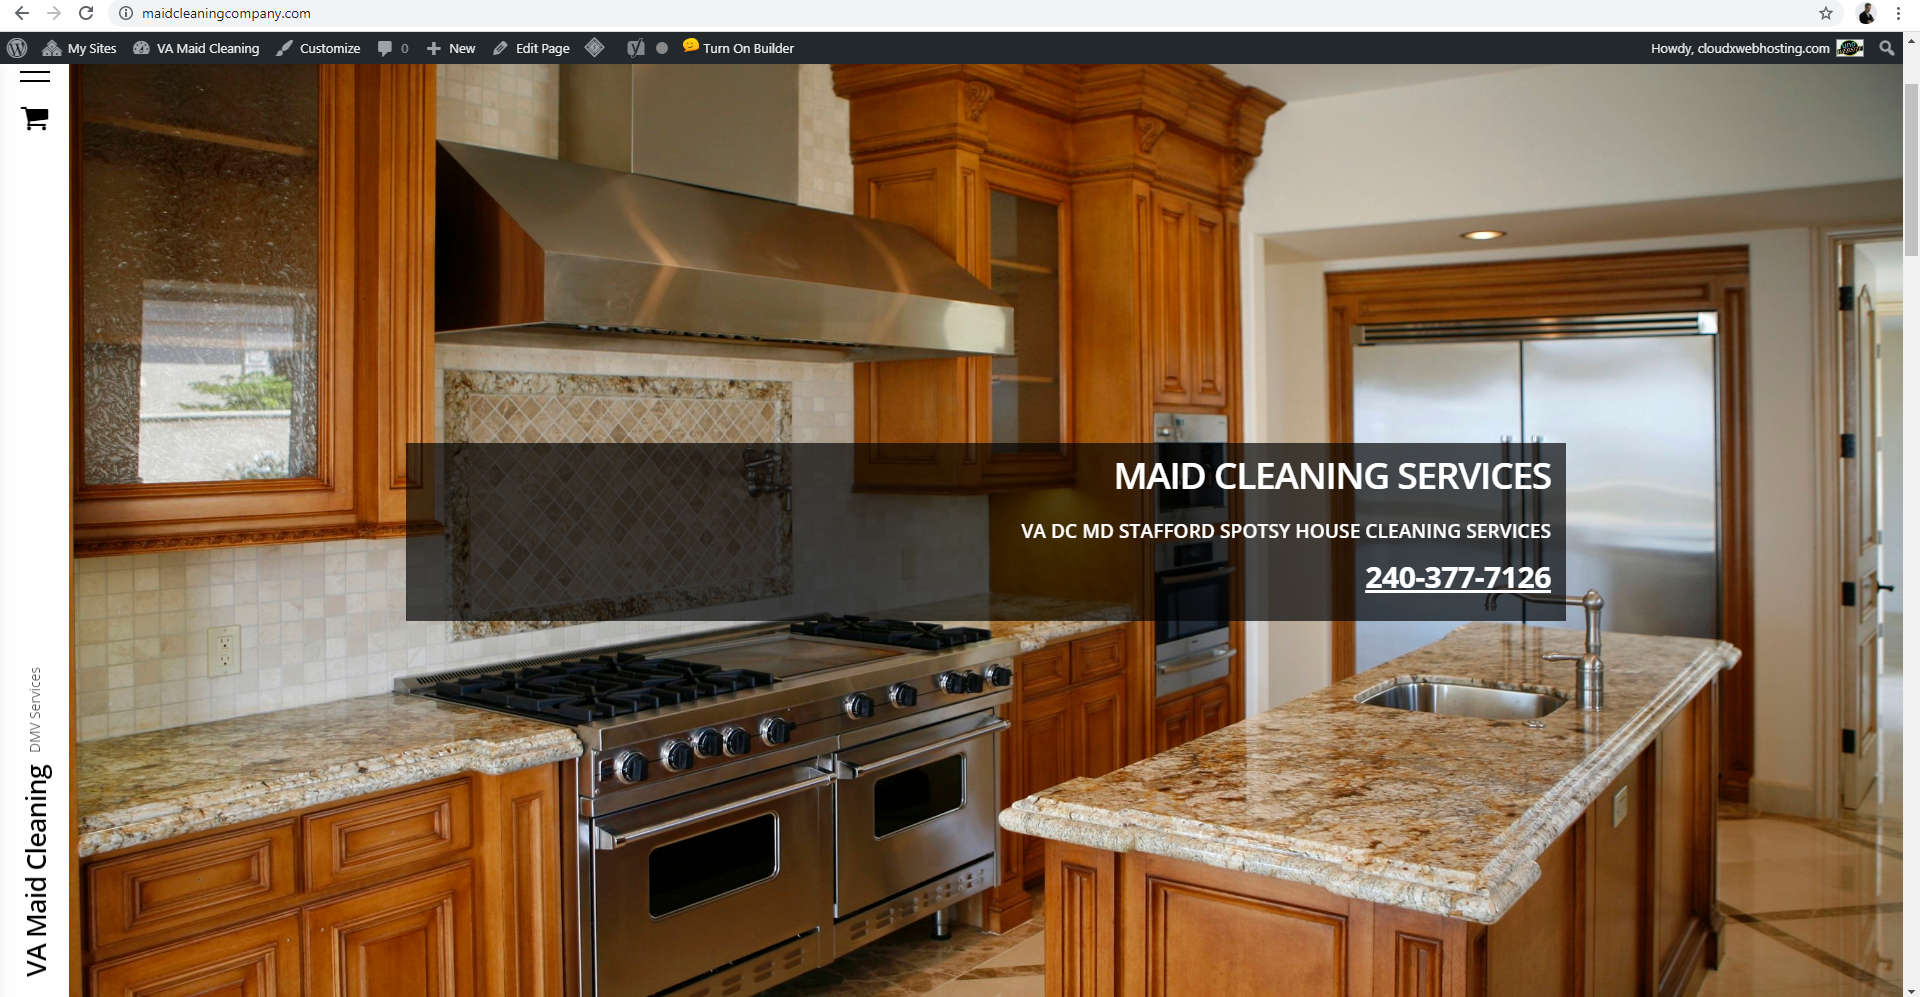 Maid House Cleaning Website